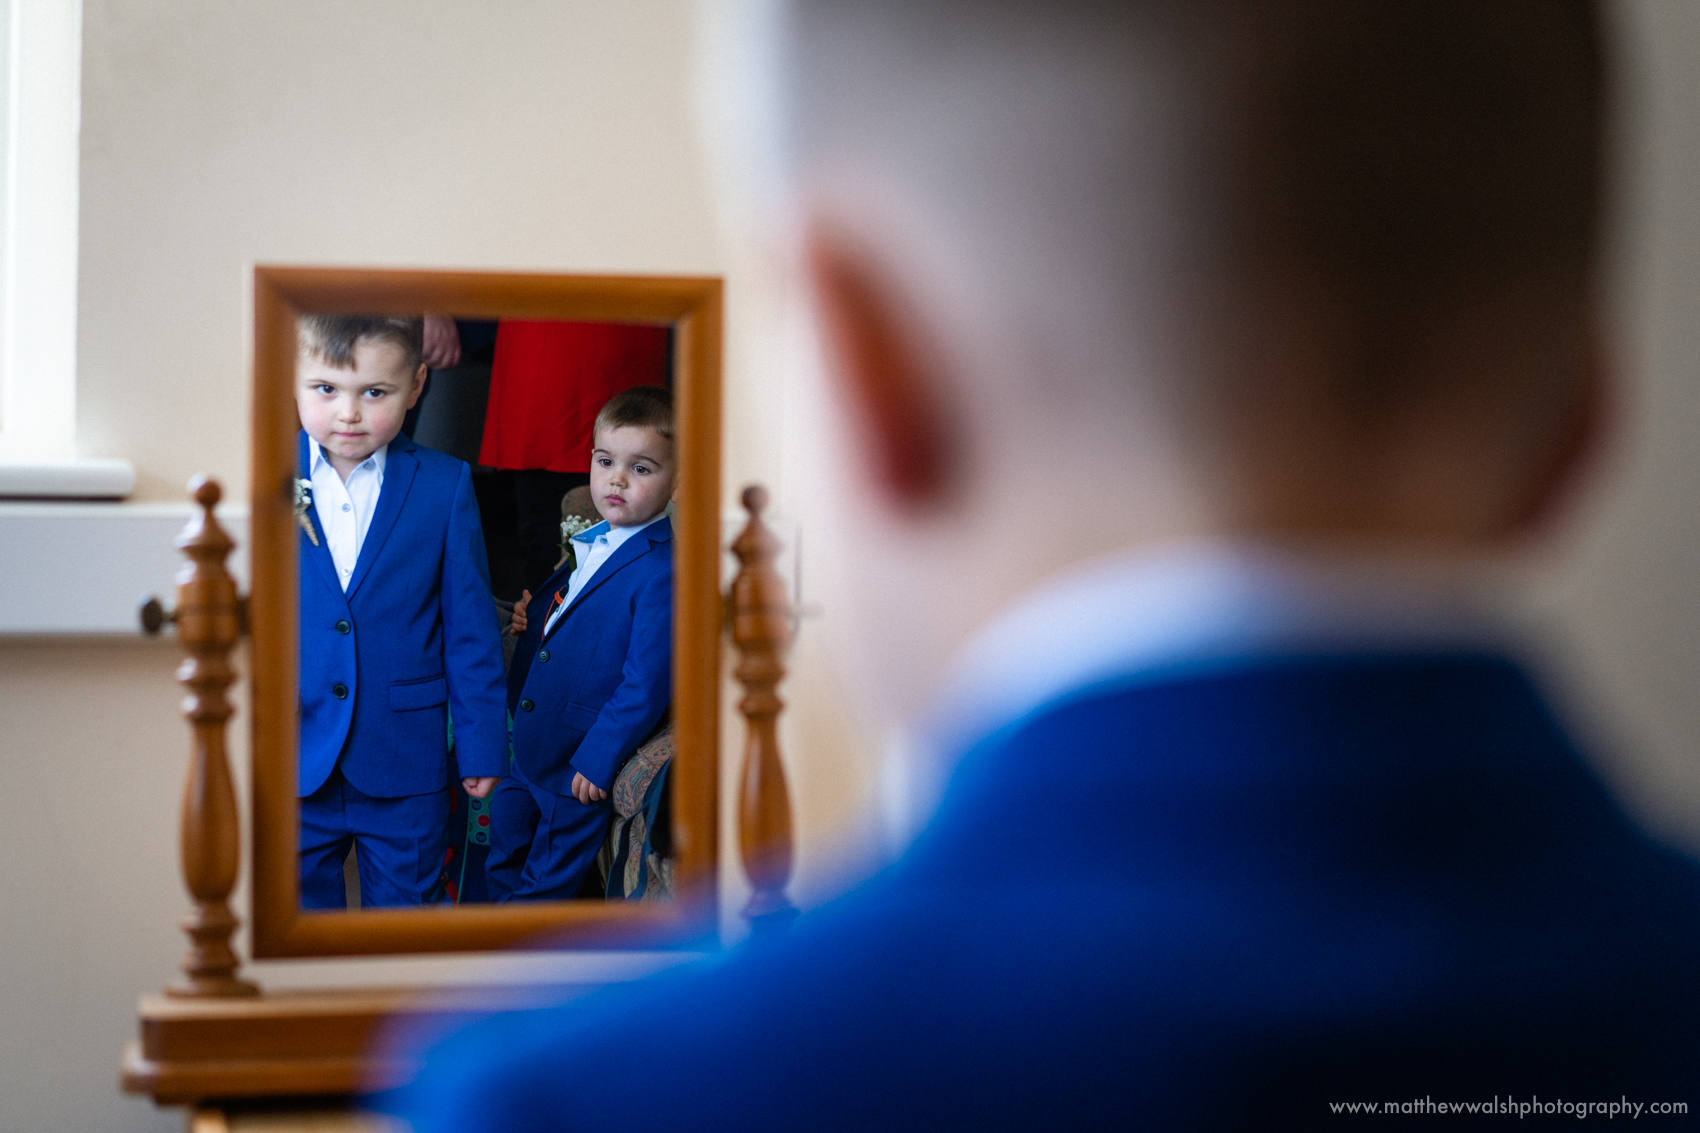 I love this image, depth created by the out of focus foreground and use of reflections to show the two boys together